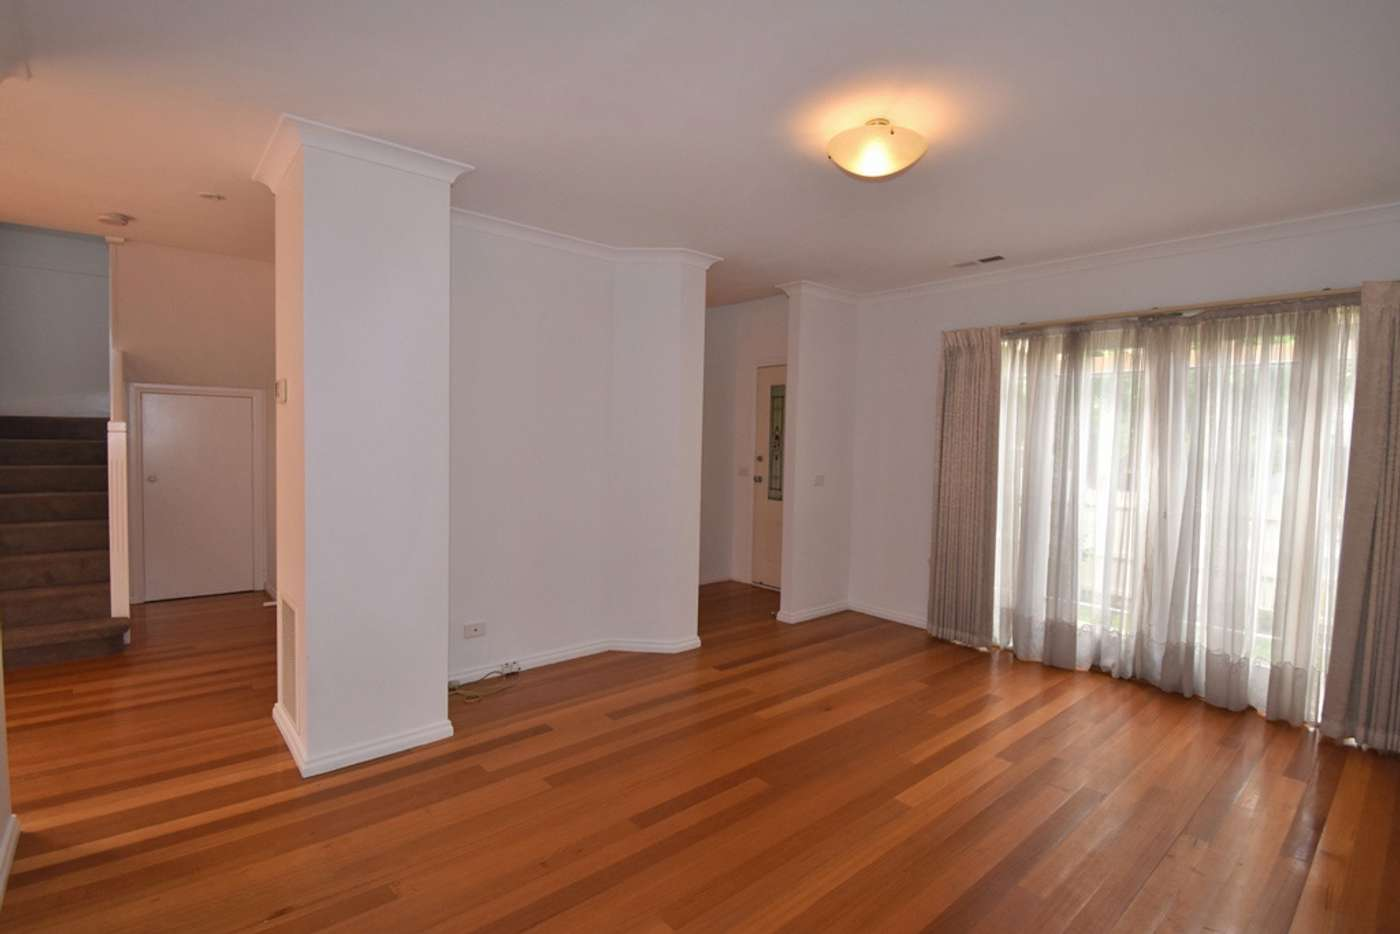 Main view of Homely townhouse listing, 1/12 Bleazby Street, Bentleigh VIC 3204